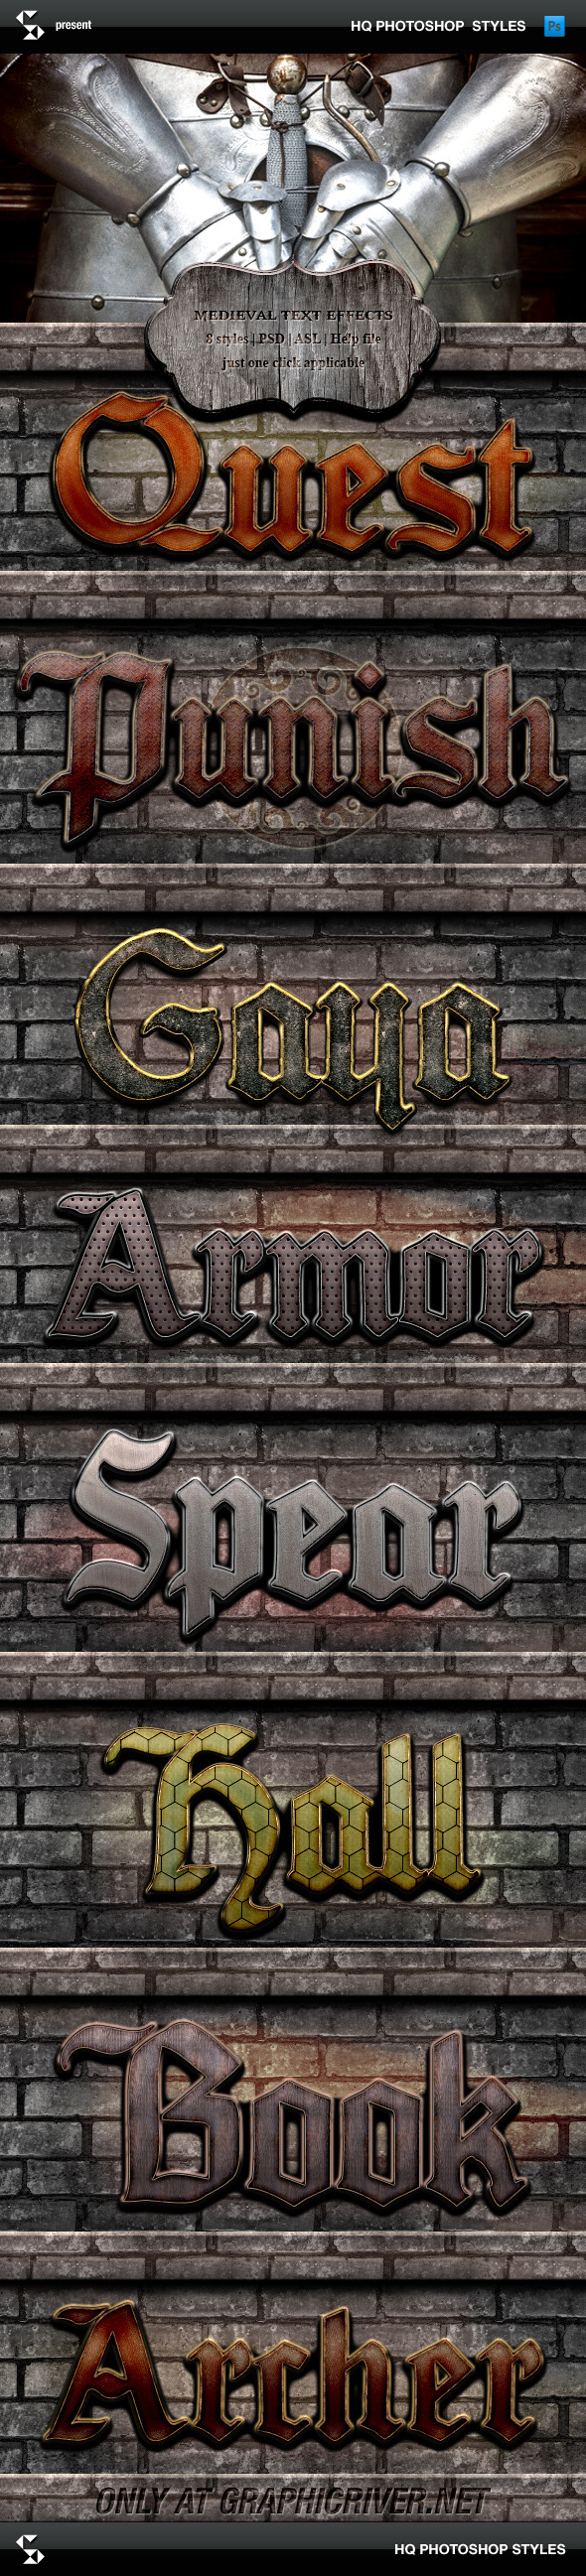 GraphicRiver Medieval Text Effects Medieval Game Styles 8791820